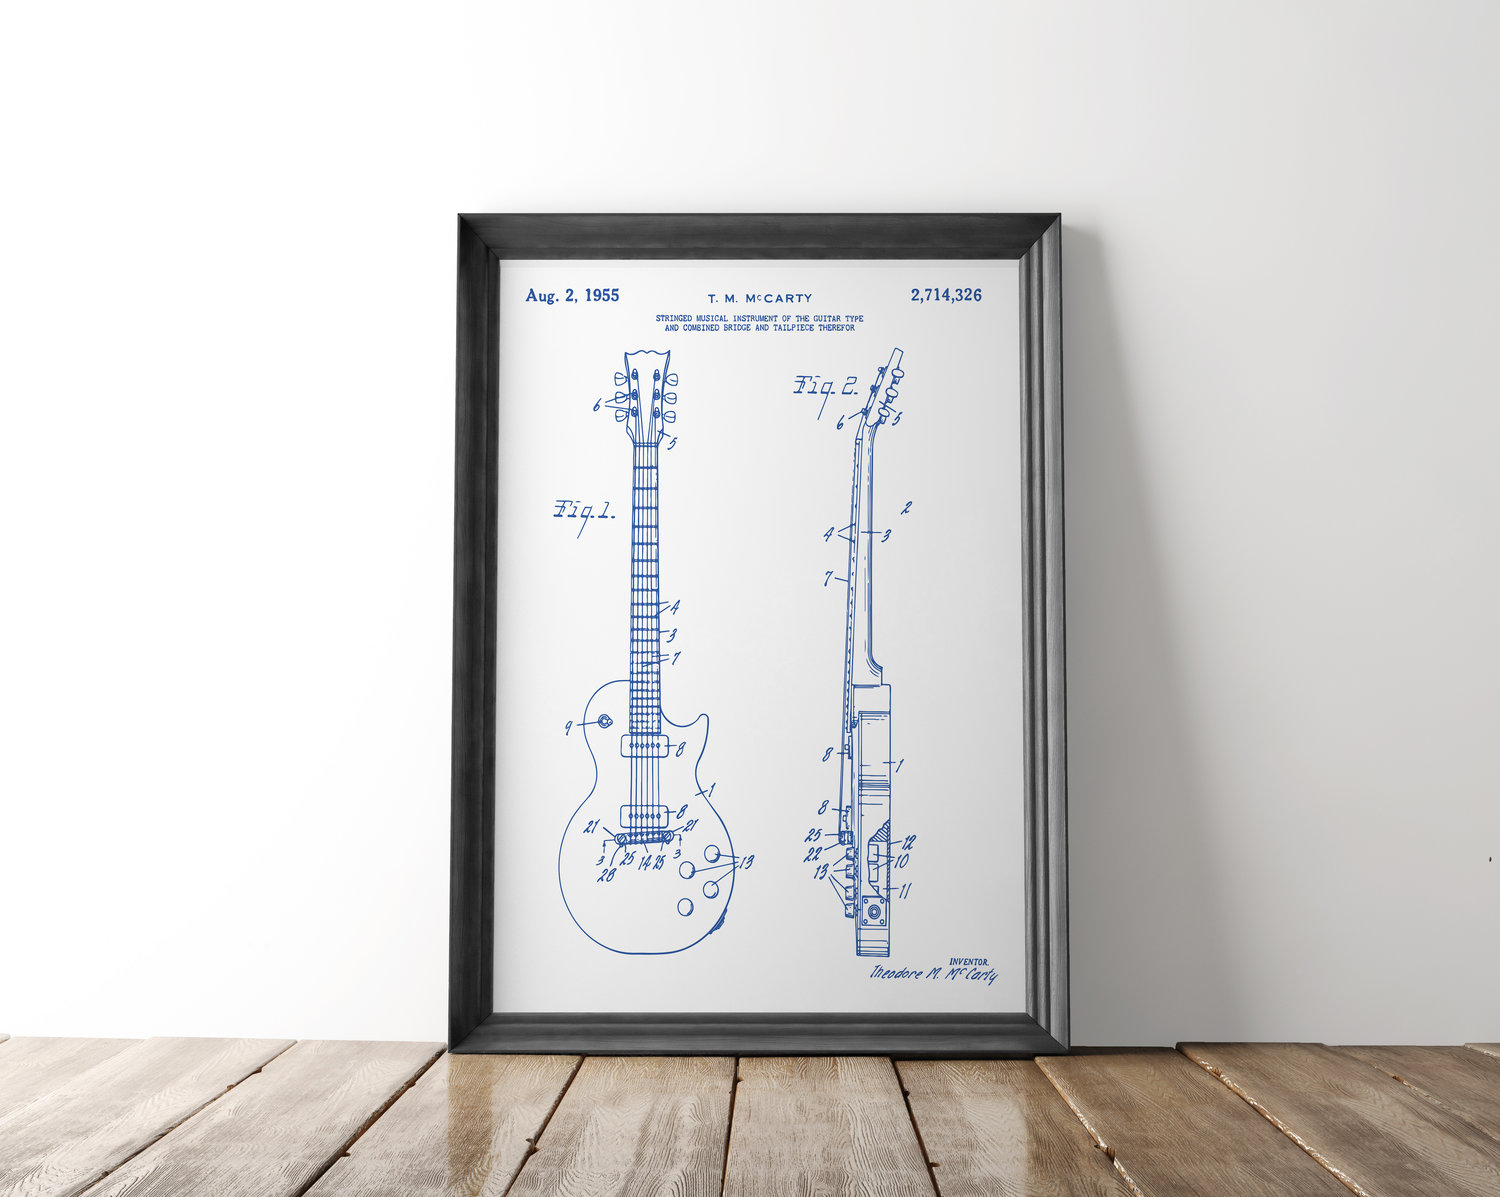 Gibson les paul guitar patent poster guitar patent art blueprint gibson les paul guitar patent poster guitar patent art blueprint art patent wall art les paul patent print patent art home decor malvernweather Images